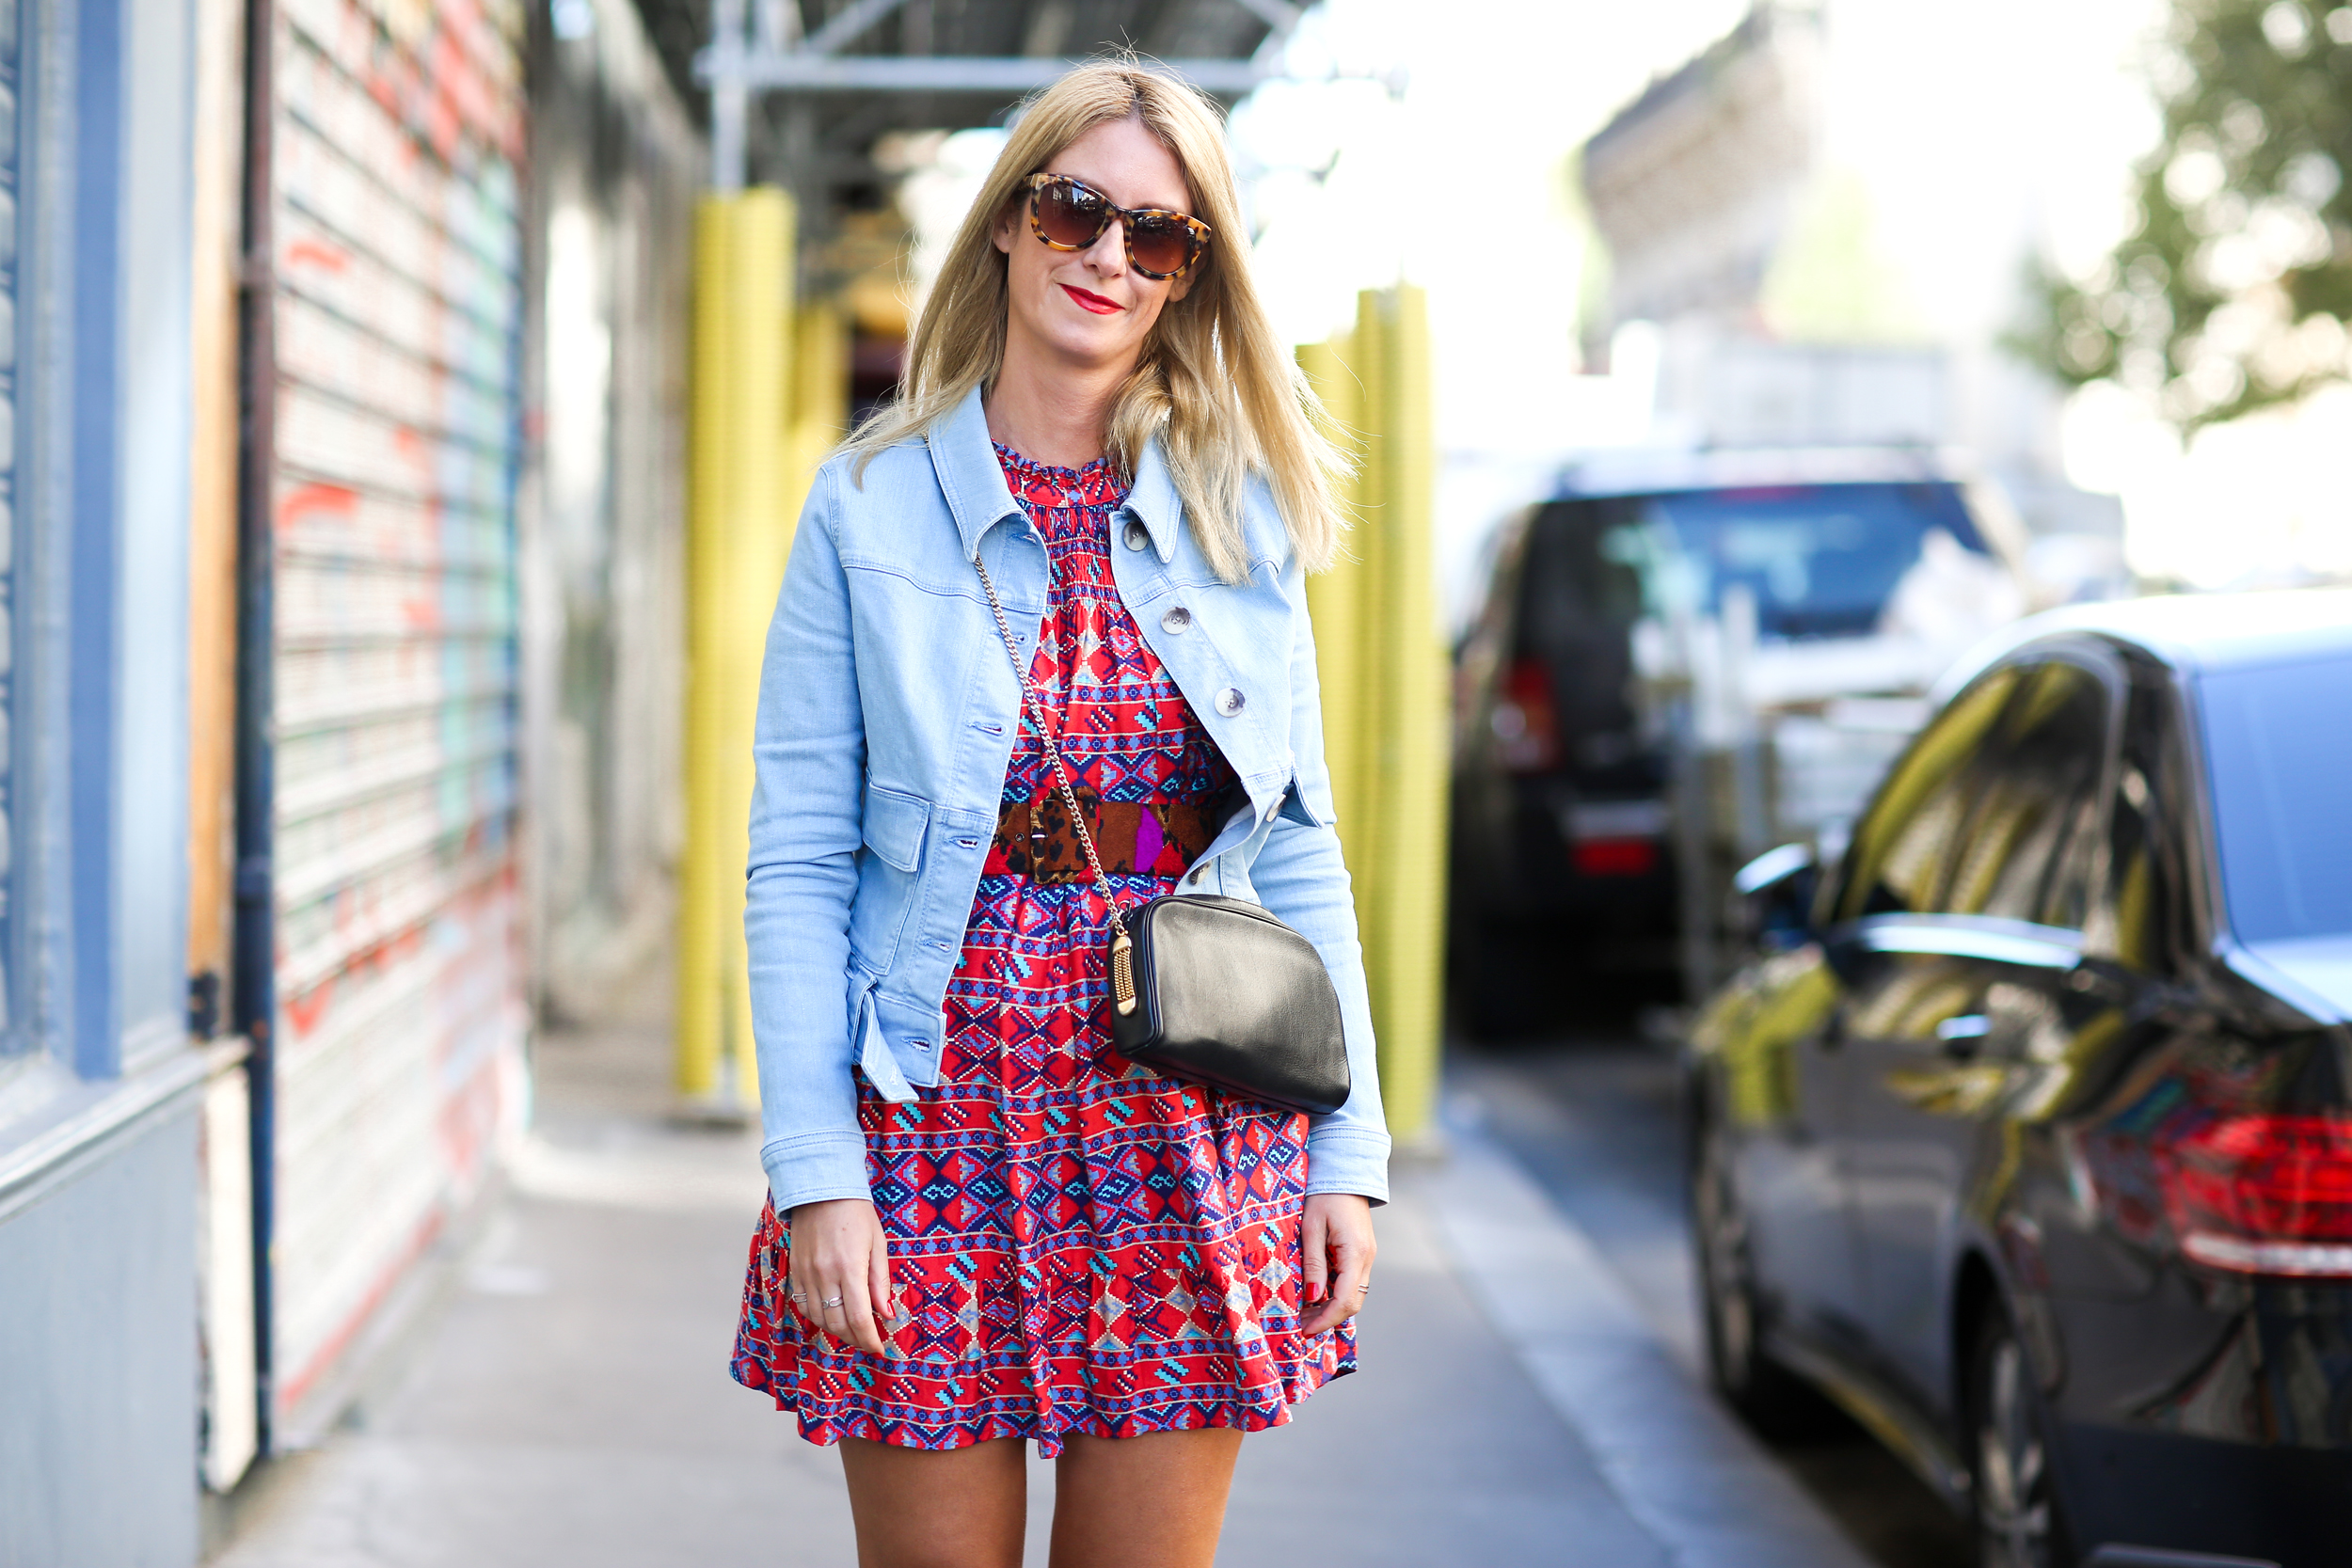 Vintage-dress-and-Jeans-jacket